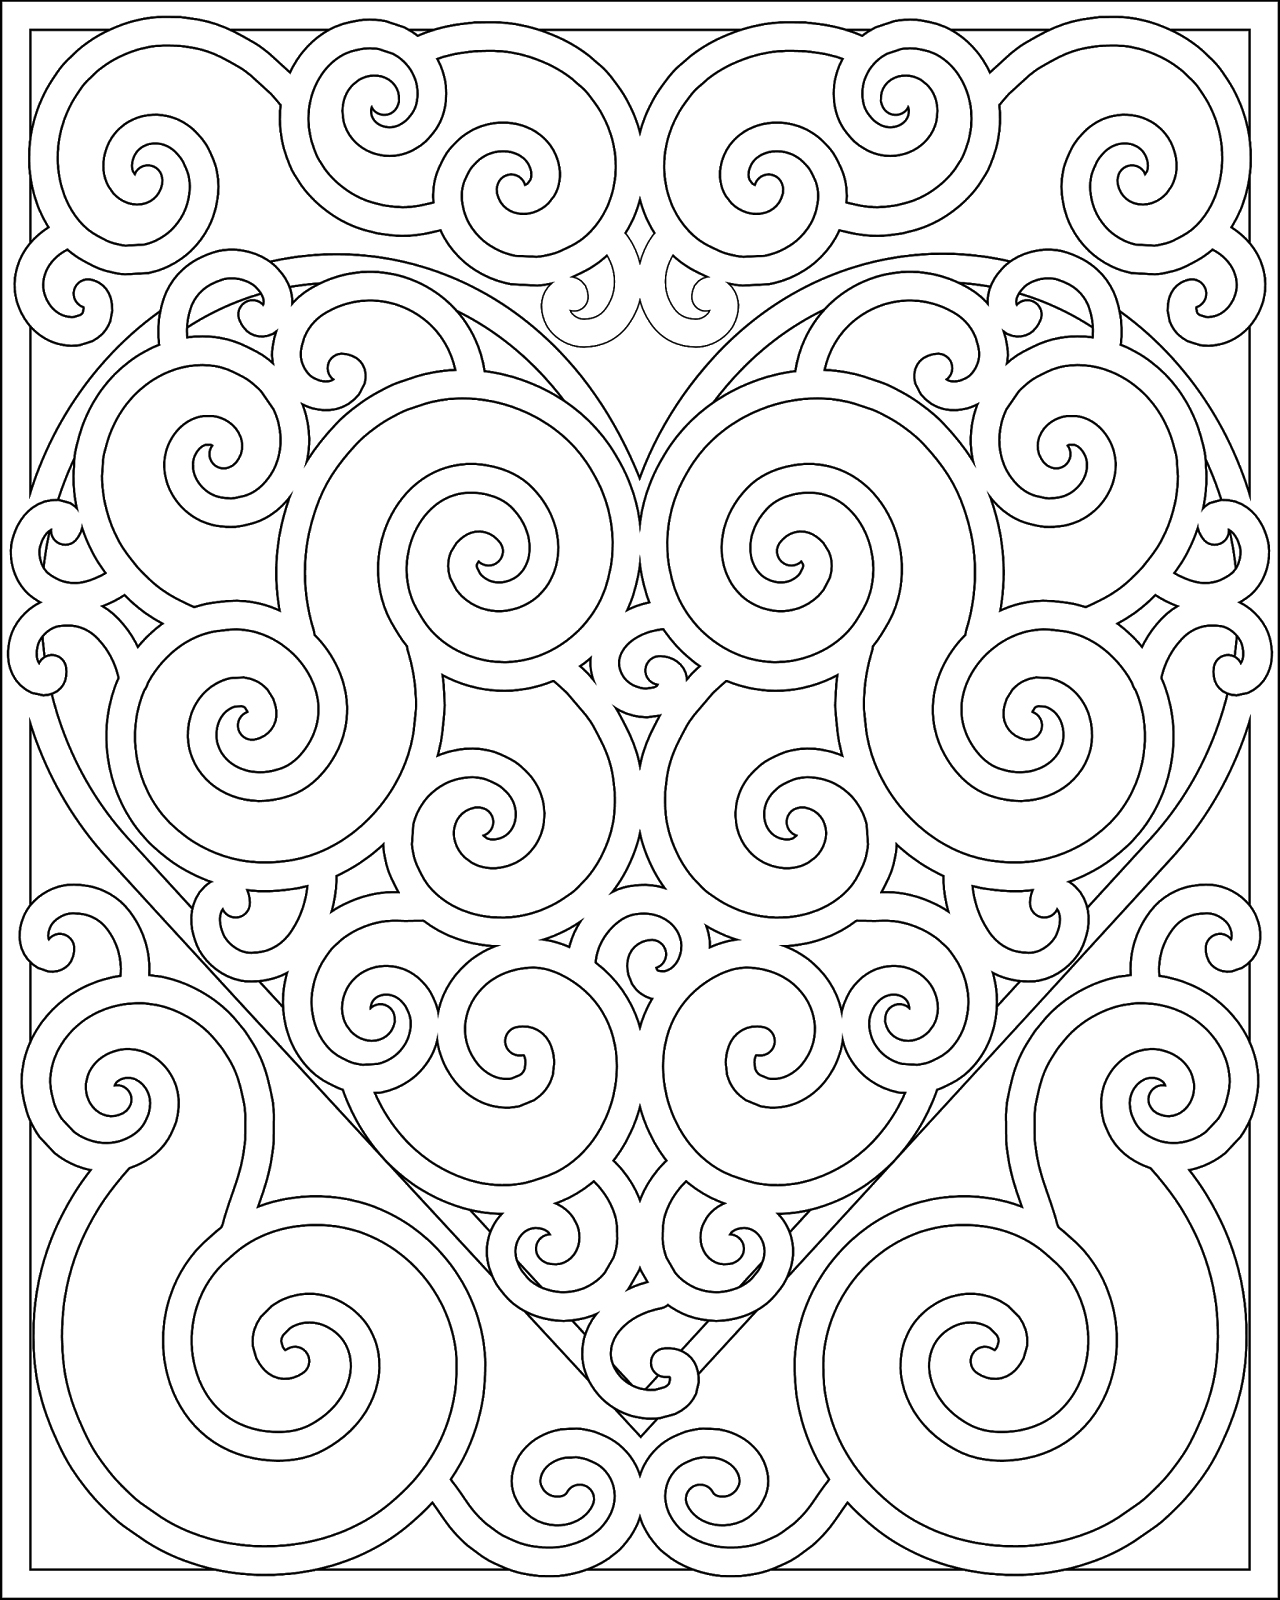 coloring pattern pages psyamb 50 trippy coloring pages coloring pattern pages